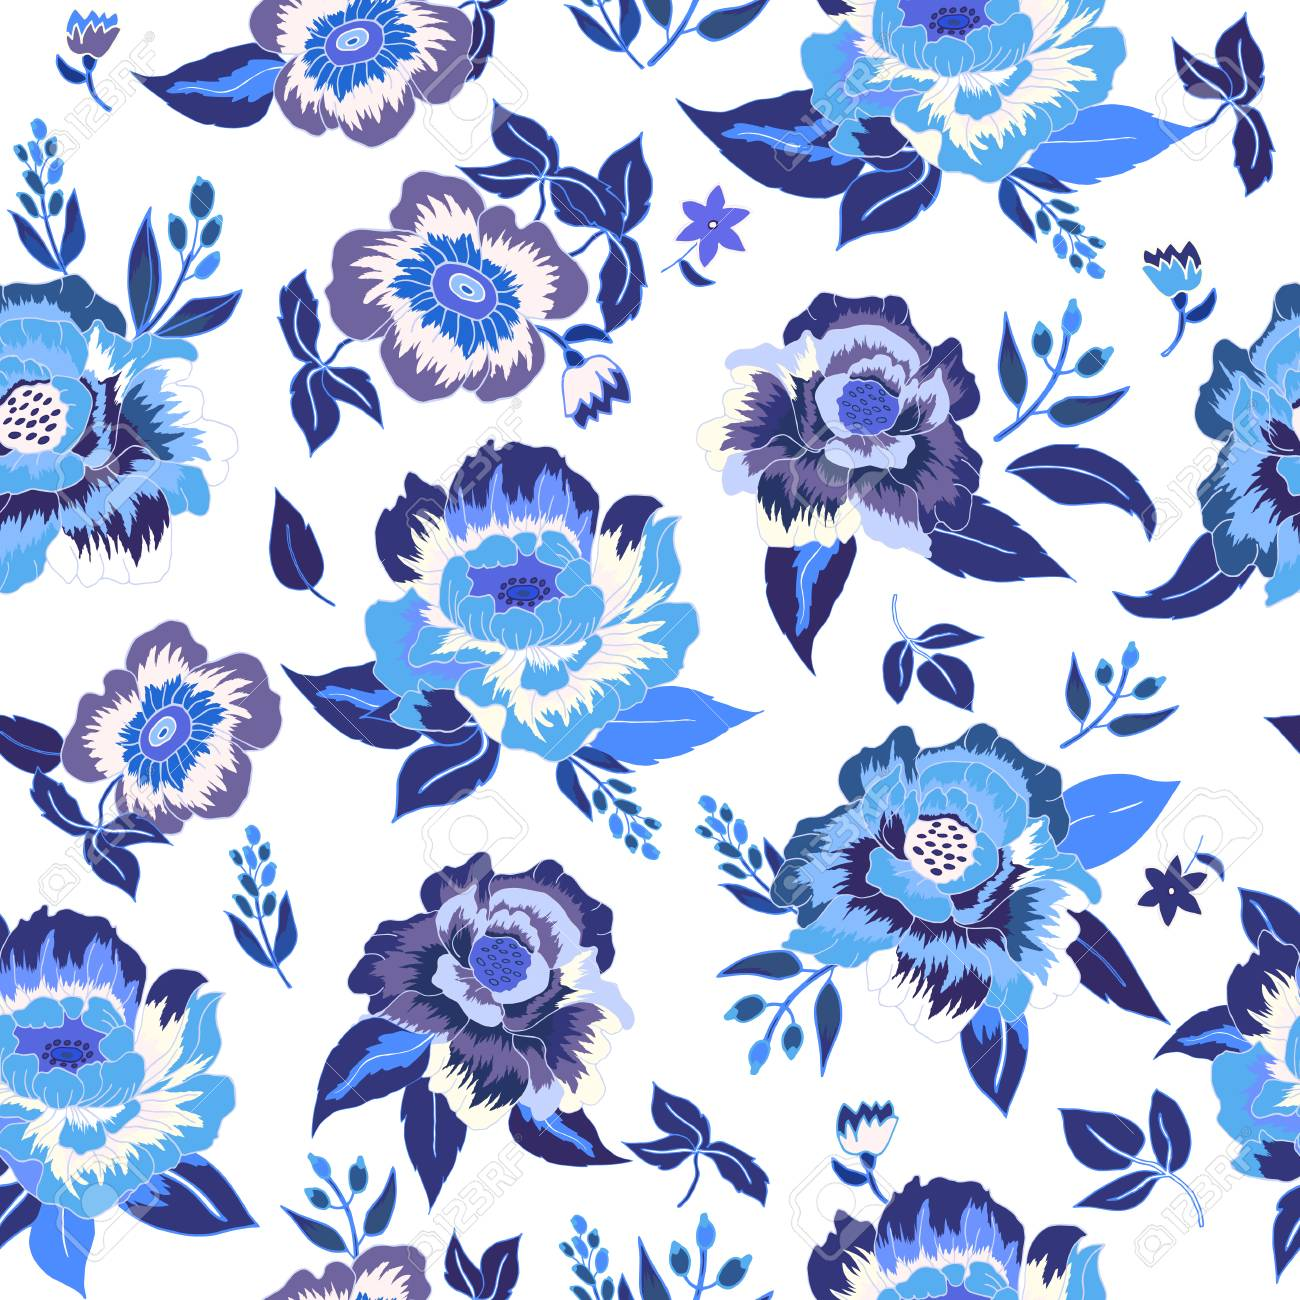 Fiori Blu E Bianchi.Seamless Floral Background Blue And White Flowers And Leafs